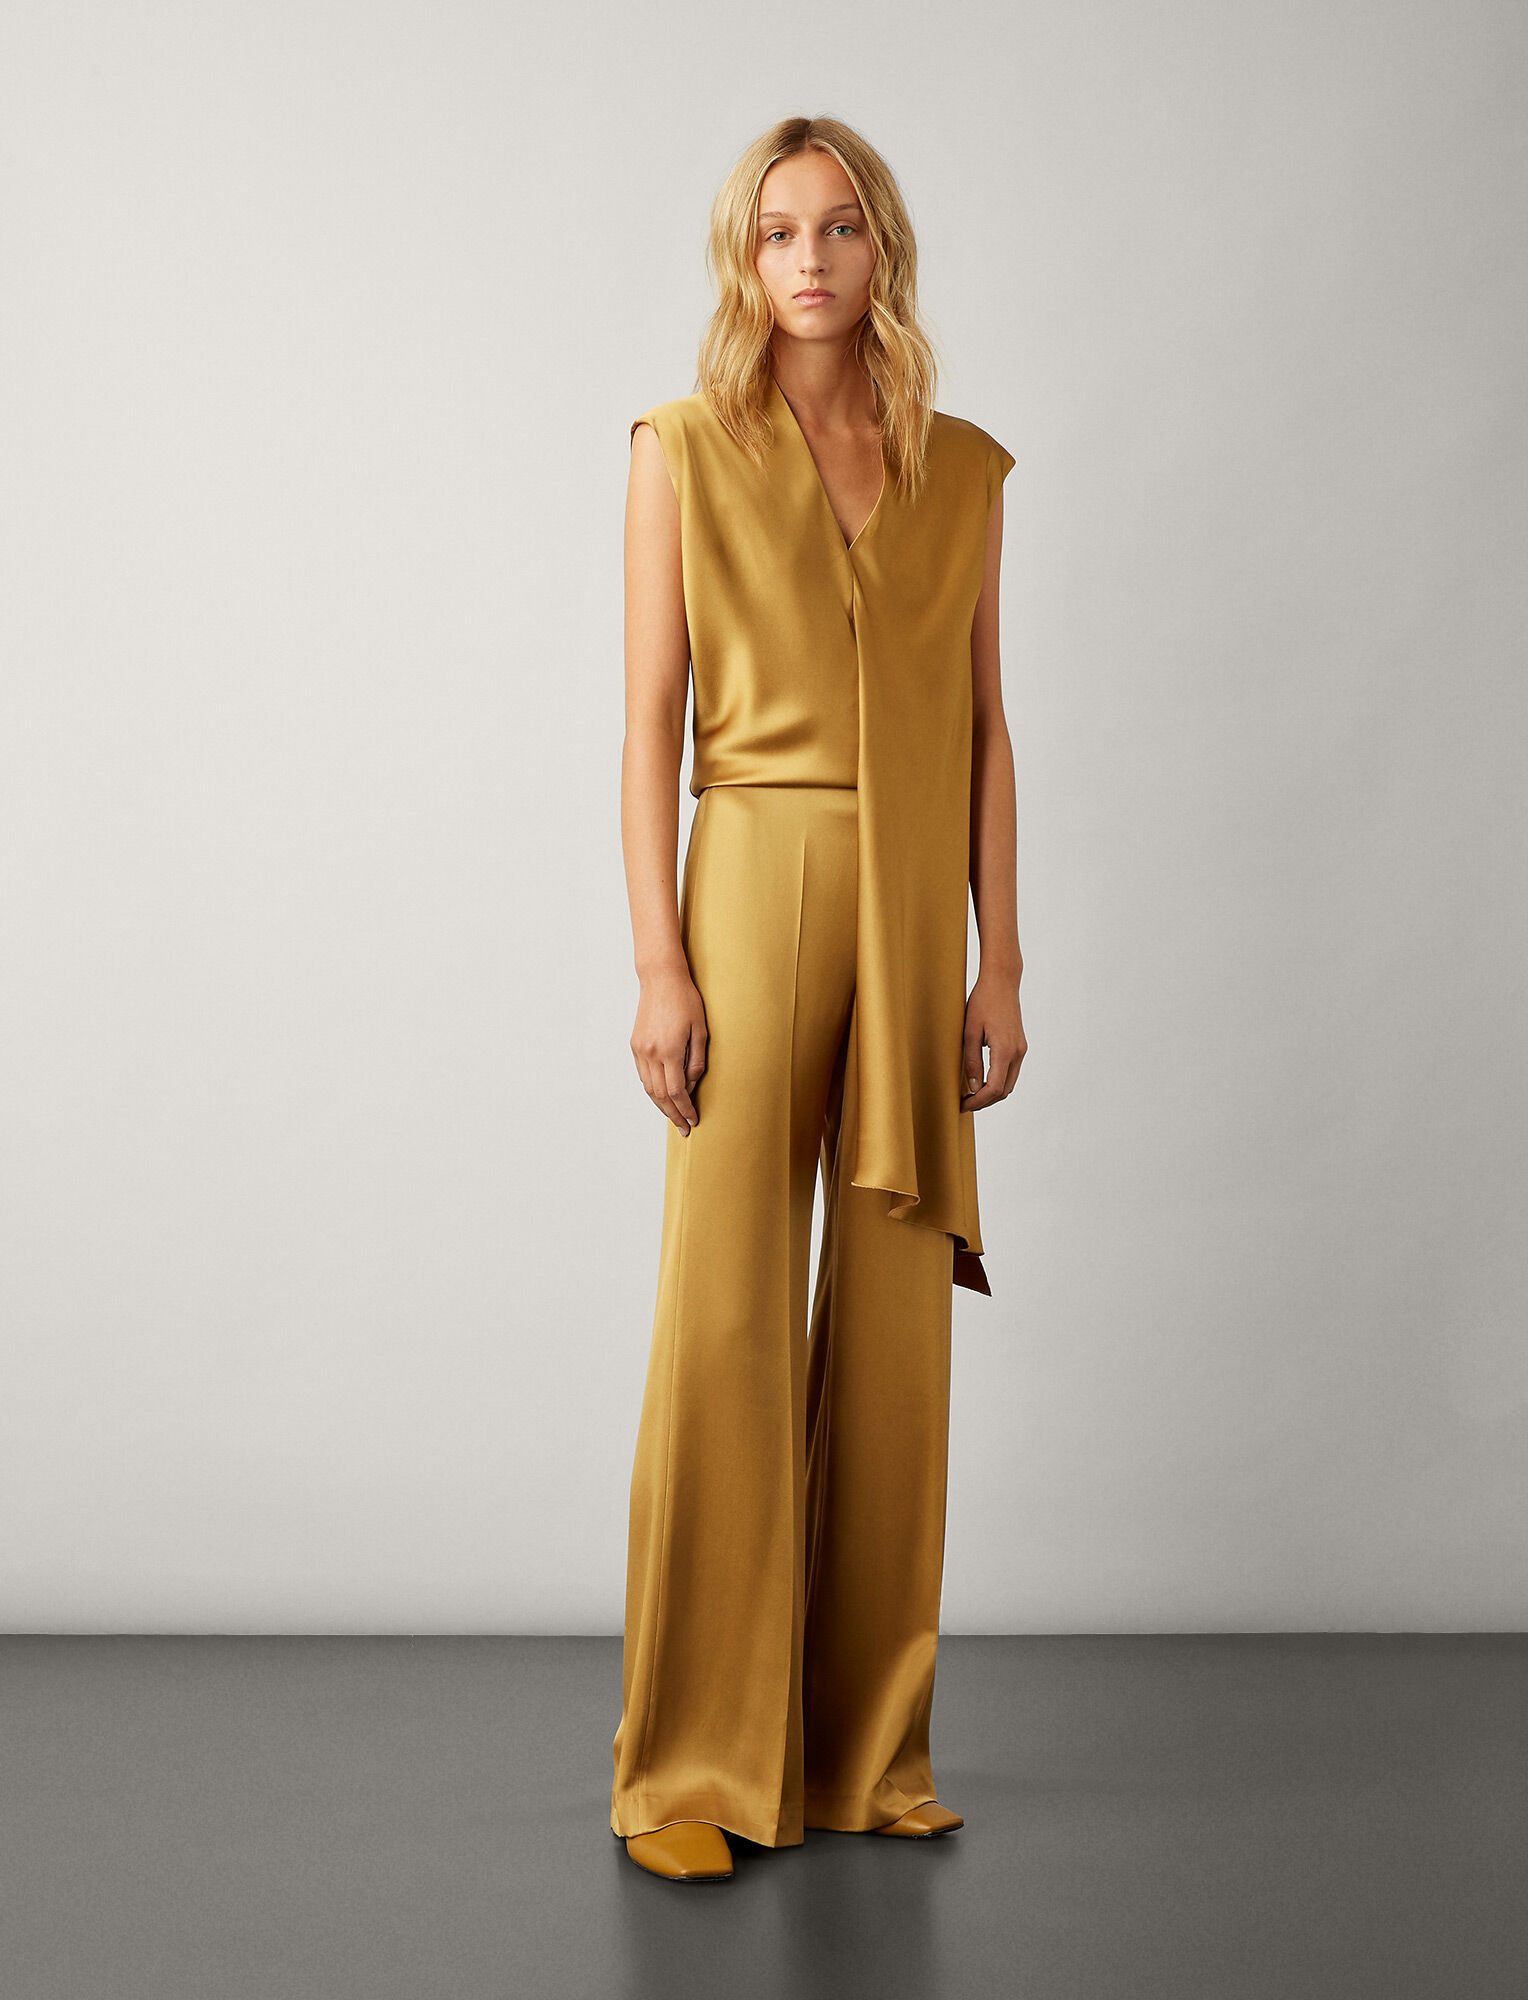 Joseph, Devyn Satin Double Face Trousers, in HAZEL